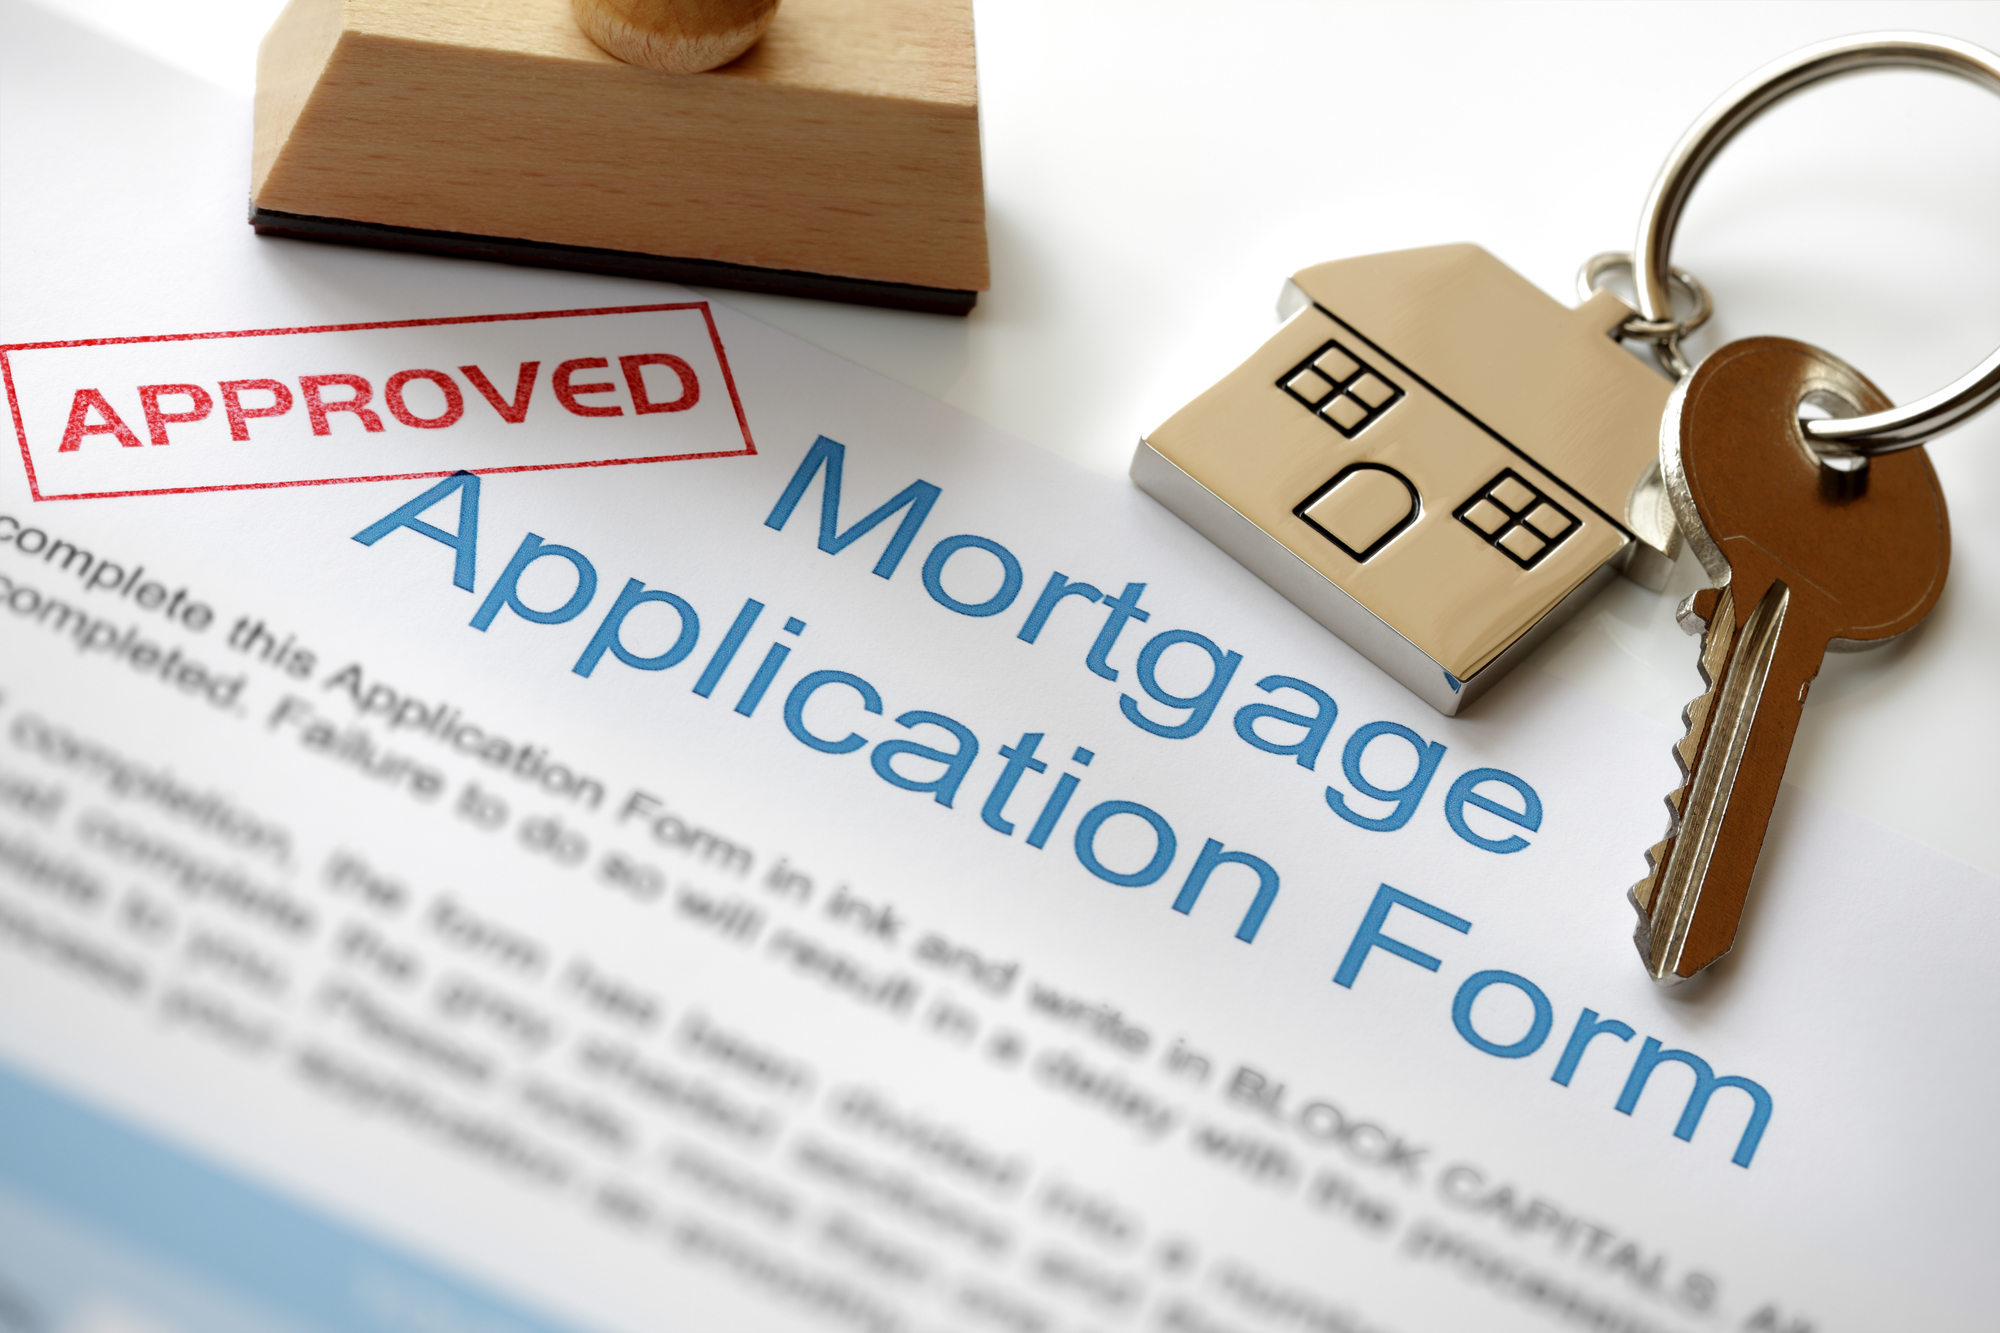 Buying a New Home? Here's Why Mortgage Pre-Approval Should Be Your First Step - The Richard Hopkinson Team